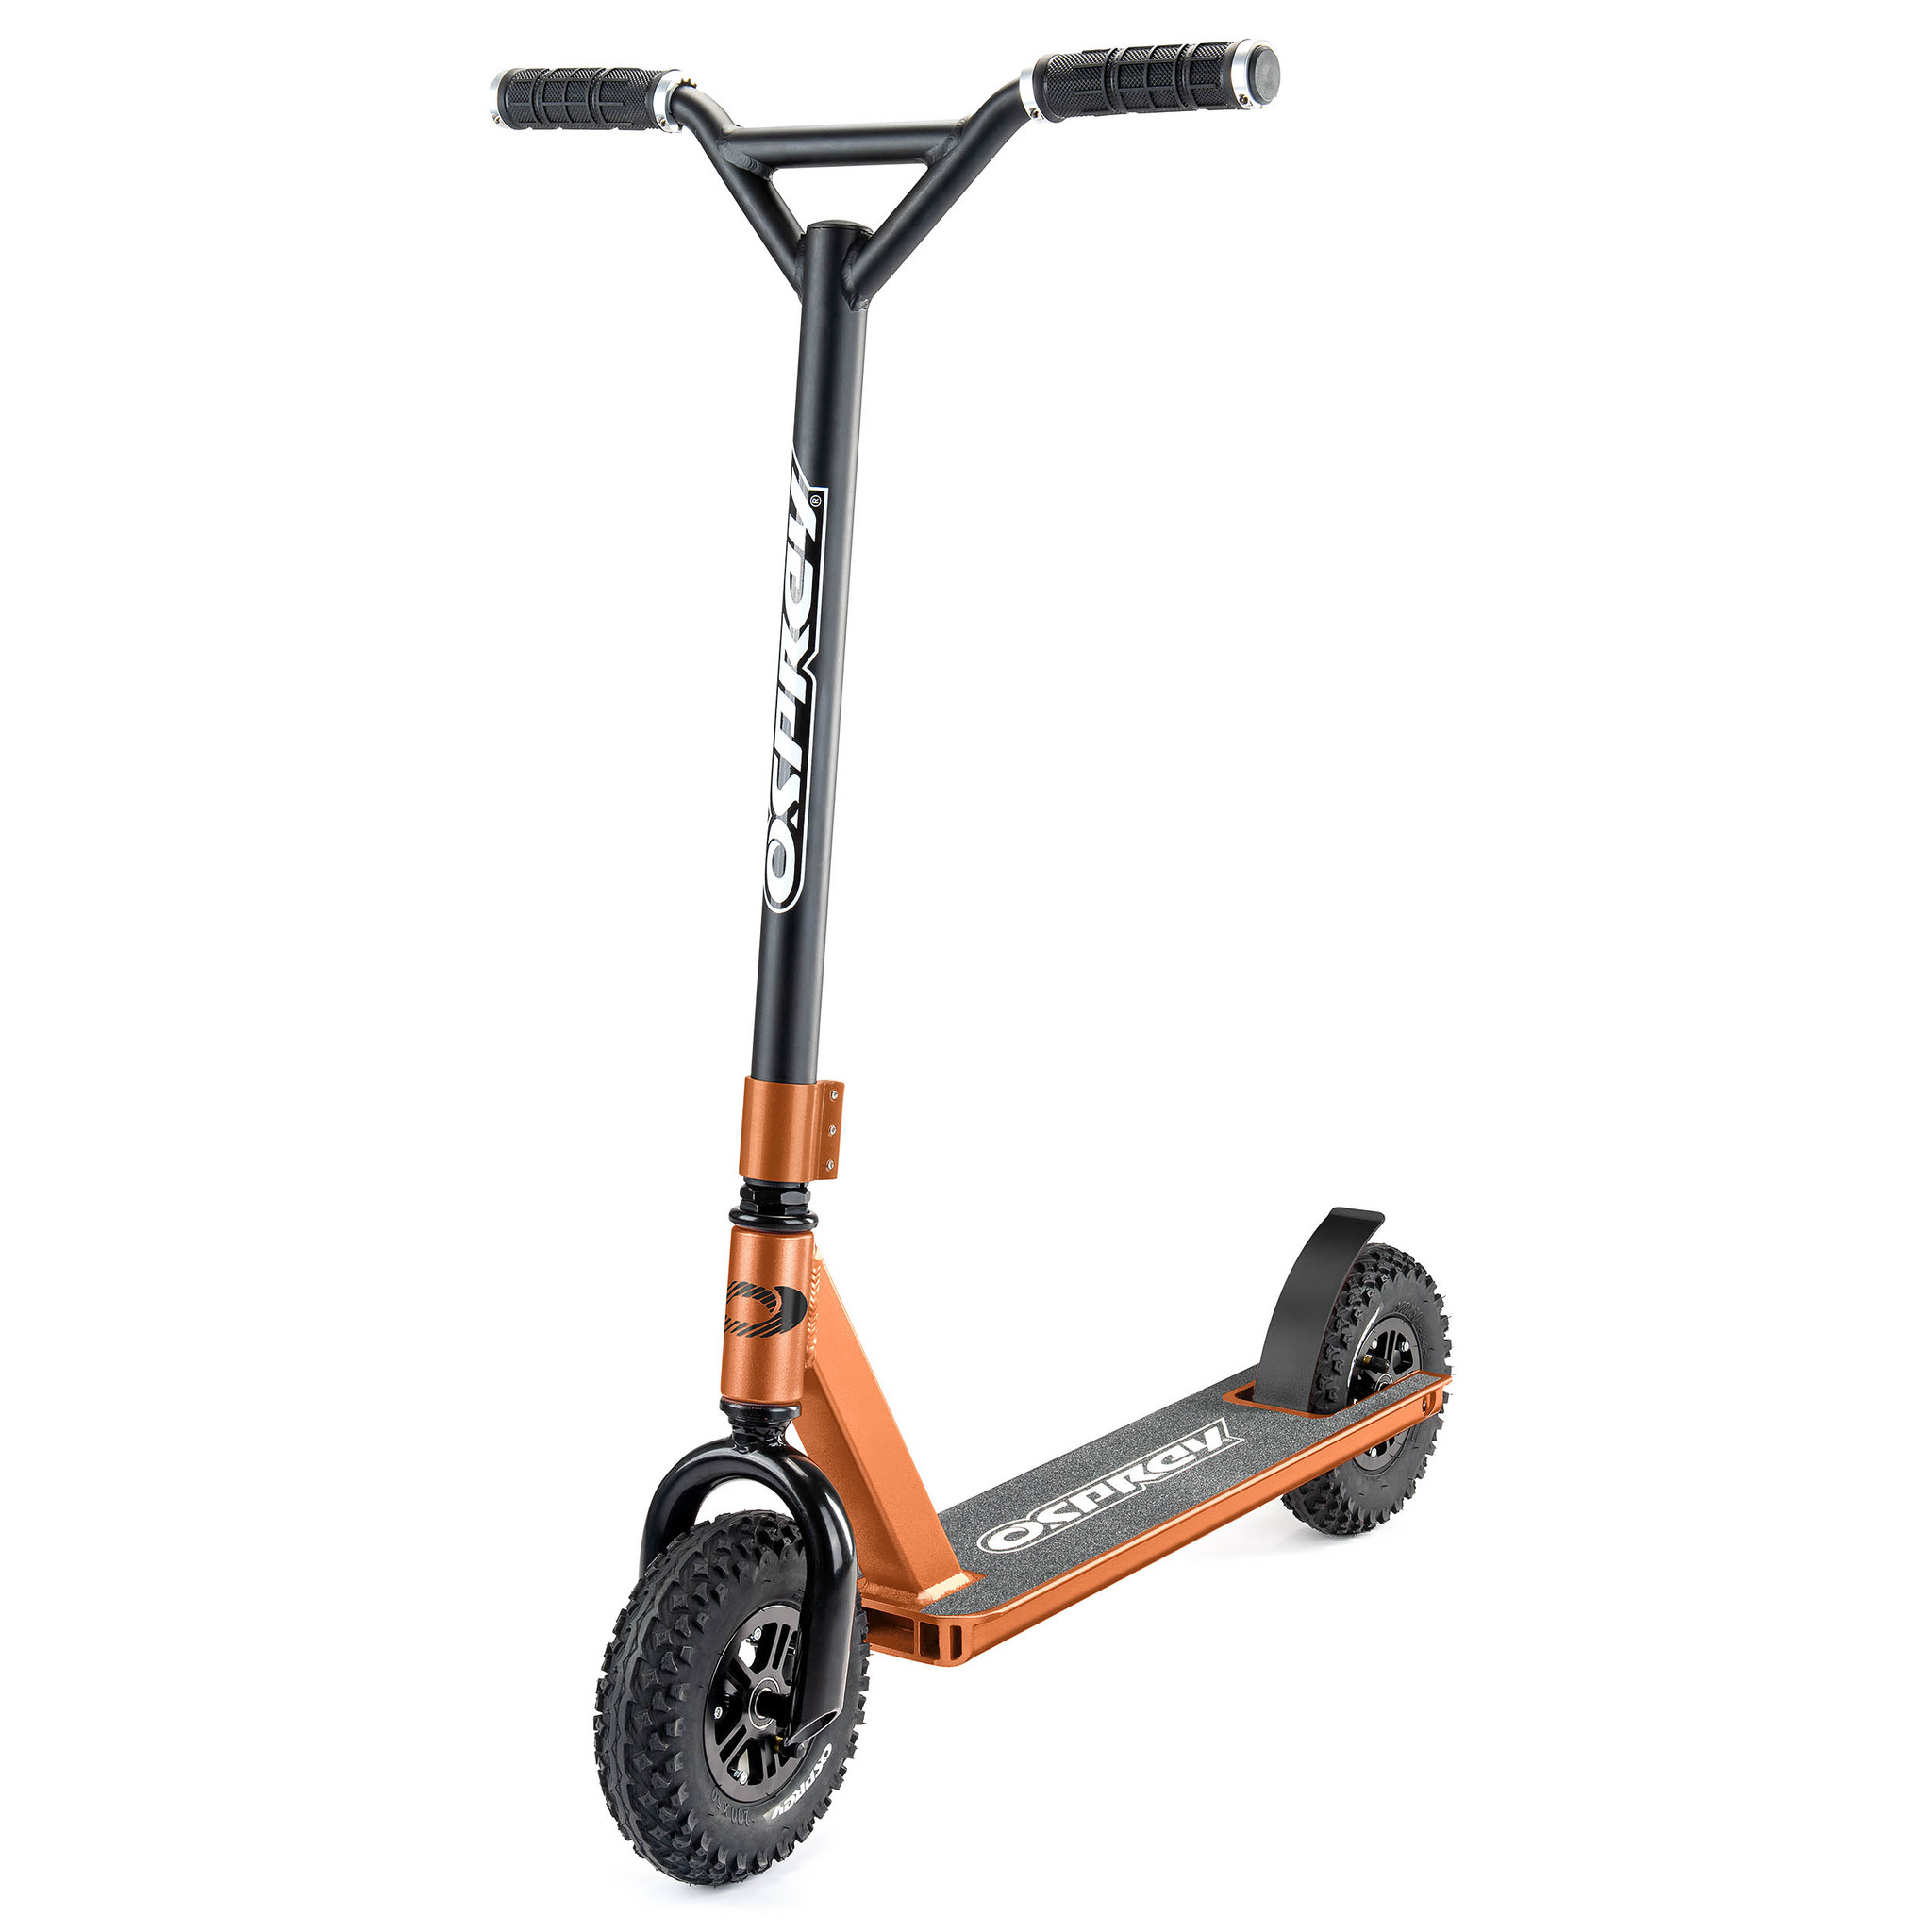 OSPREY DIRT SCOOTER - COPPER